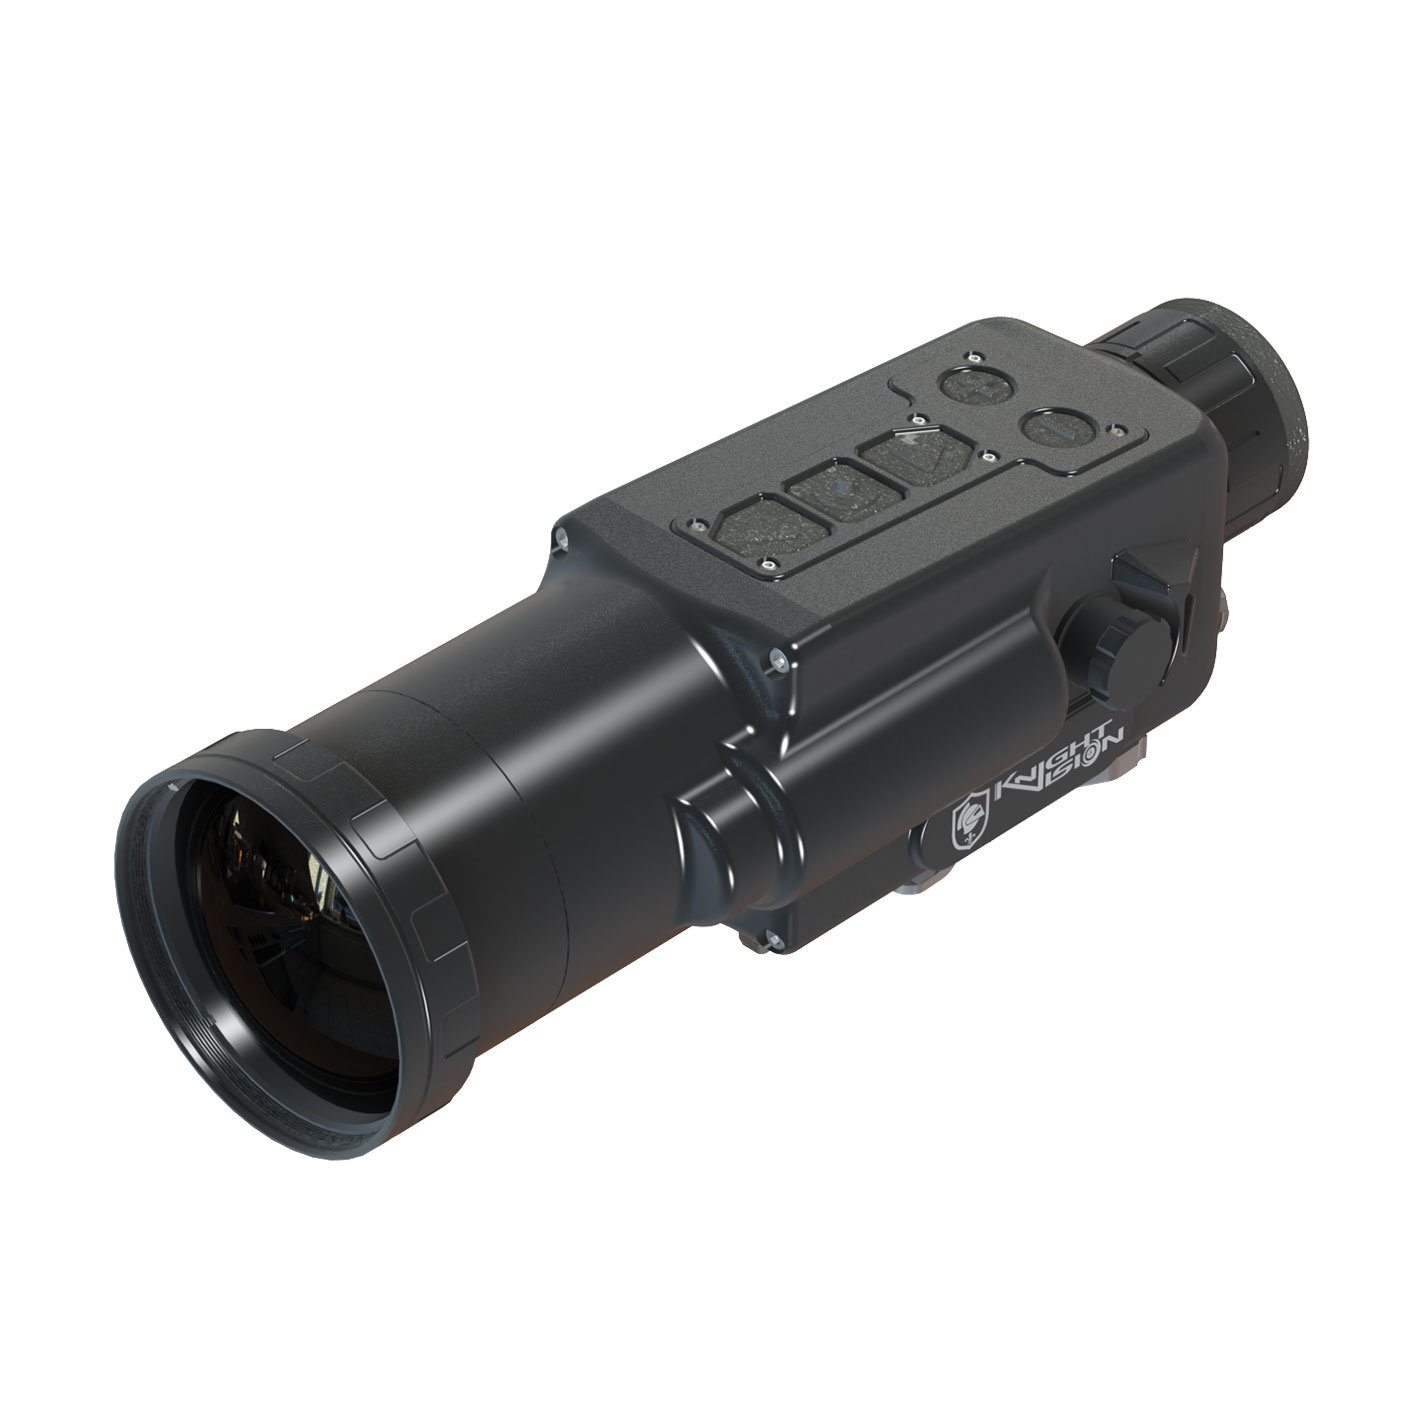 KNIGHT VISION® UNS-TsM Motorized Electric Focus Clip-On Thermal Weapon Sight